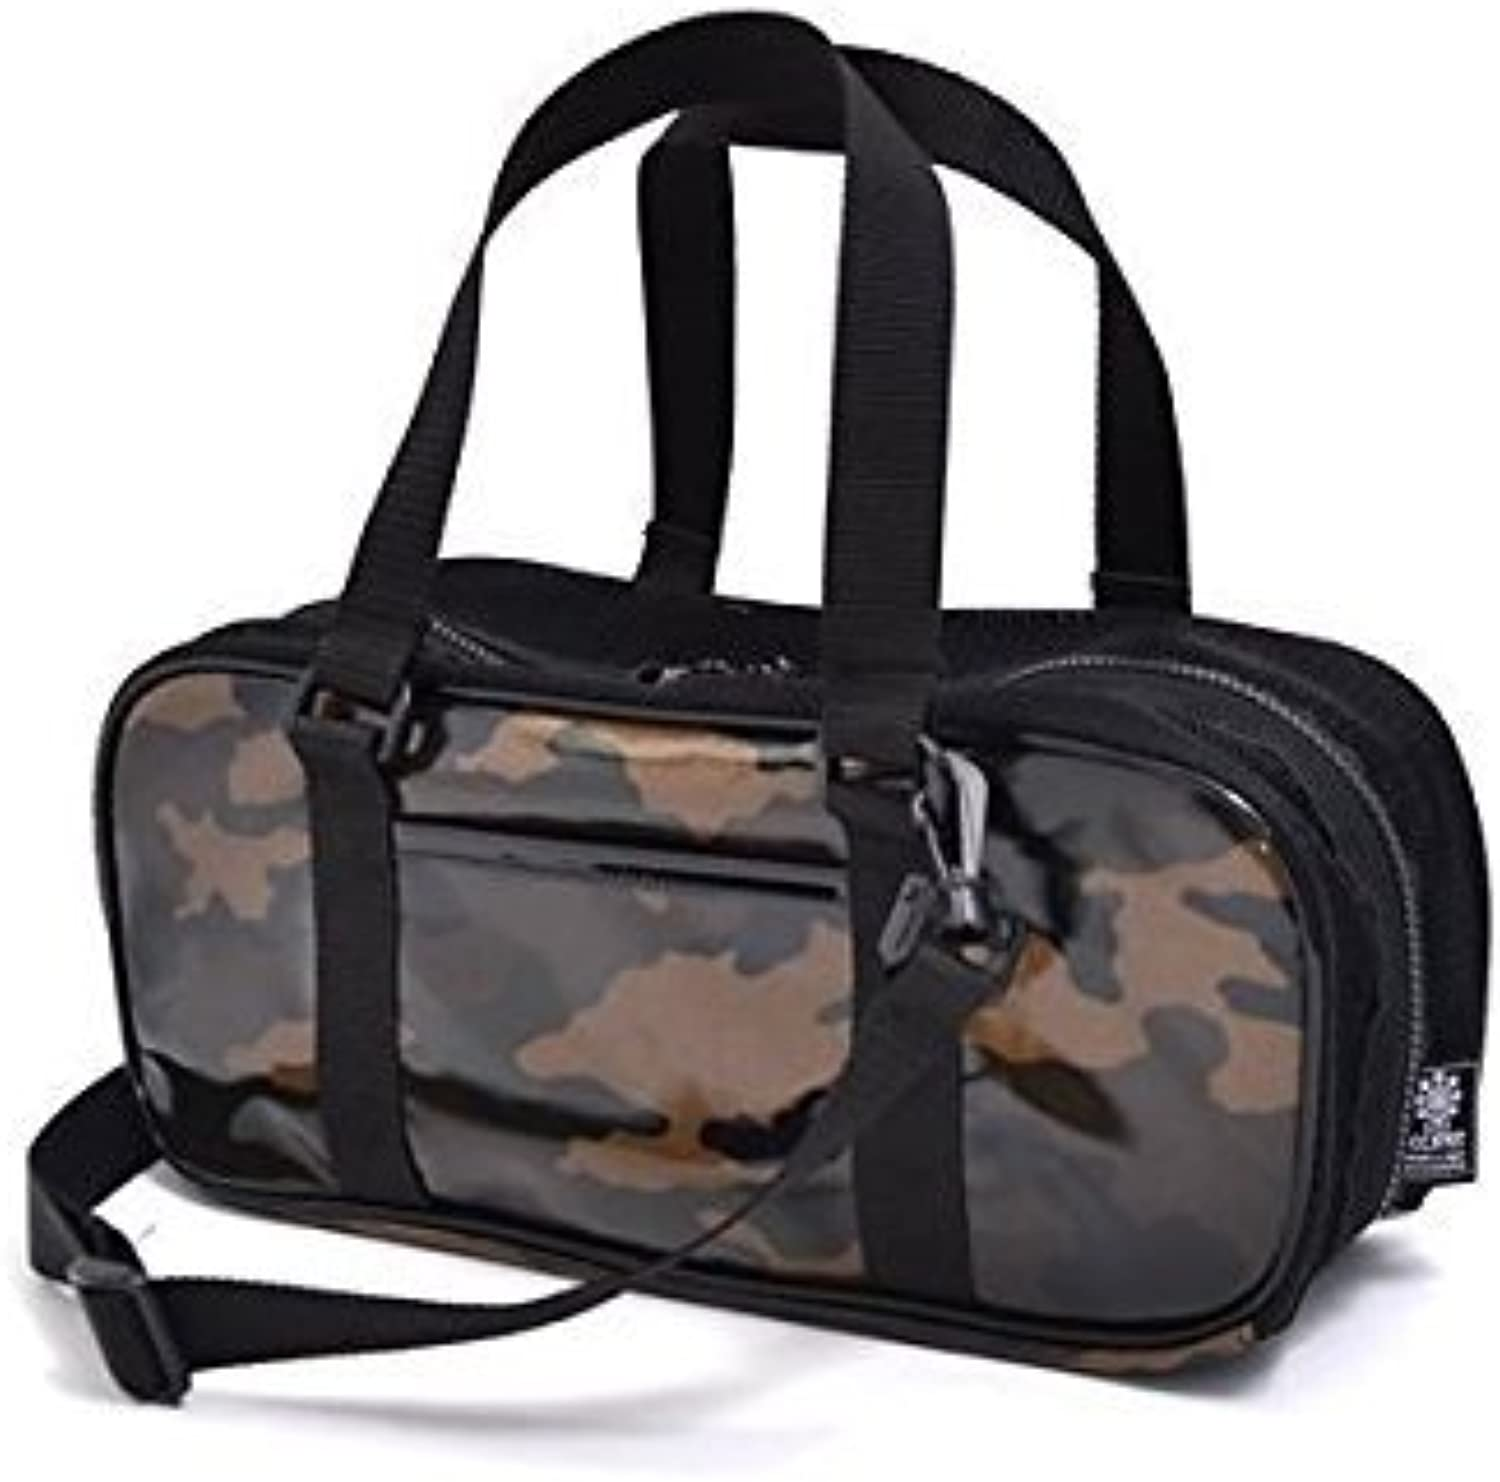 Kids paint bag rated on style N2104800 made in Japan, moss green camouflage (bag only) (japan import)